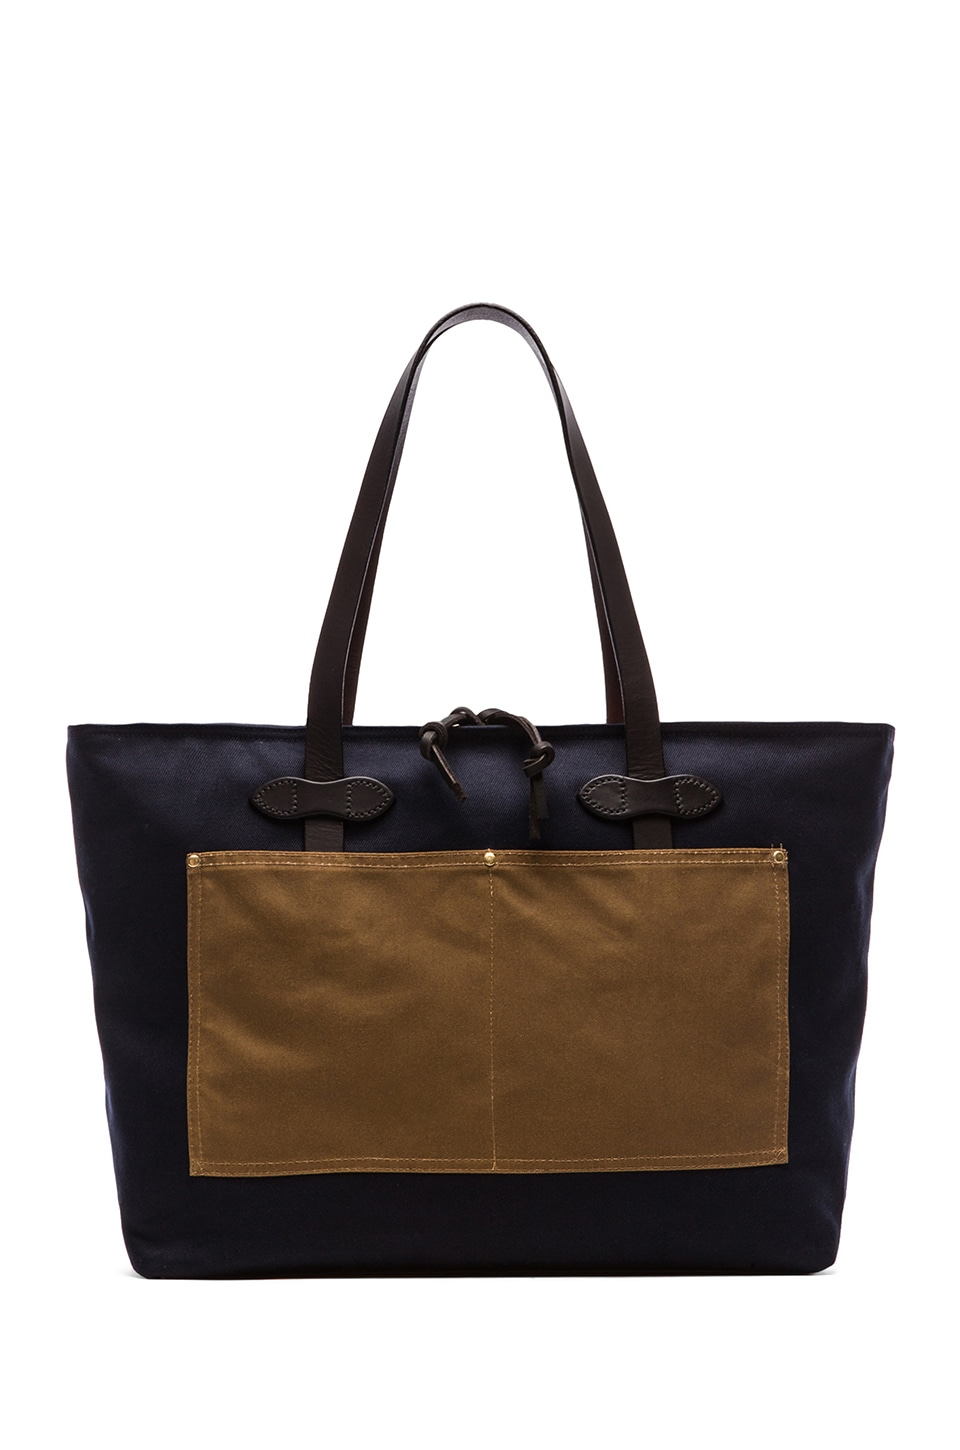 Filson Large Zip Tote in Navy & Orange & Tan